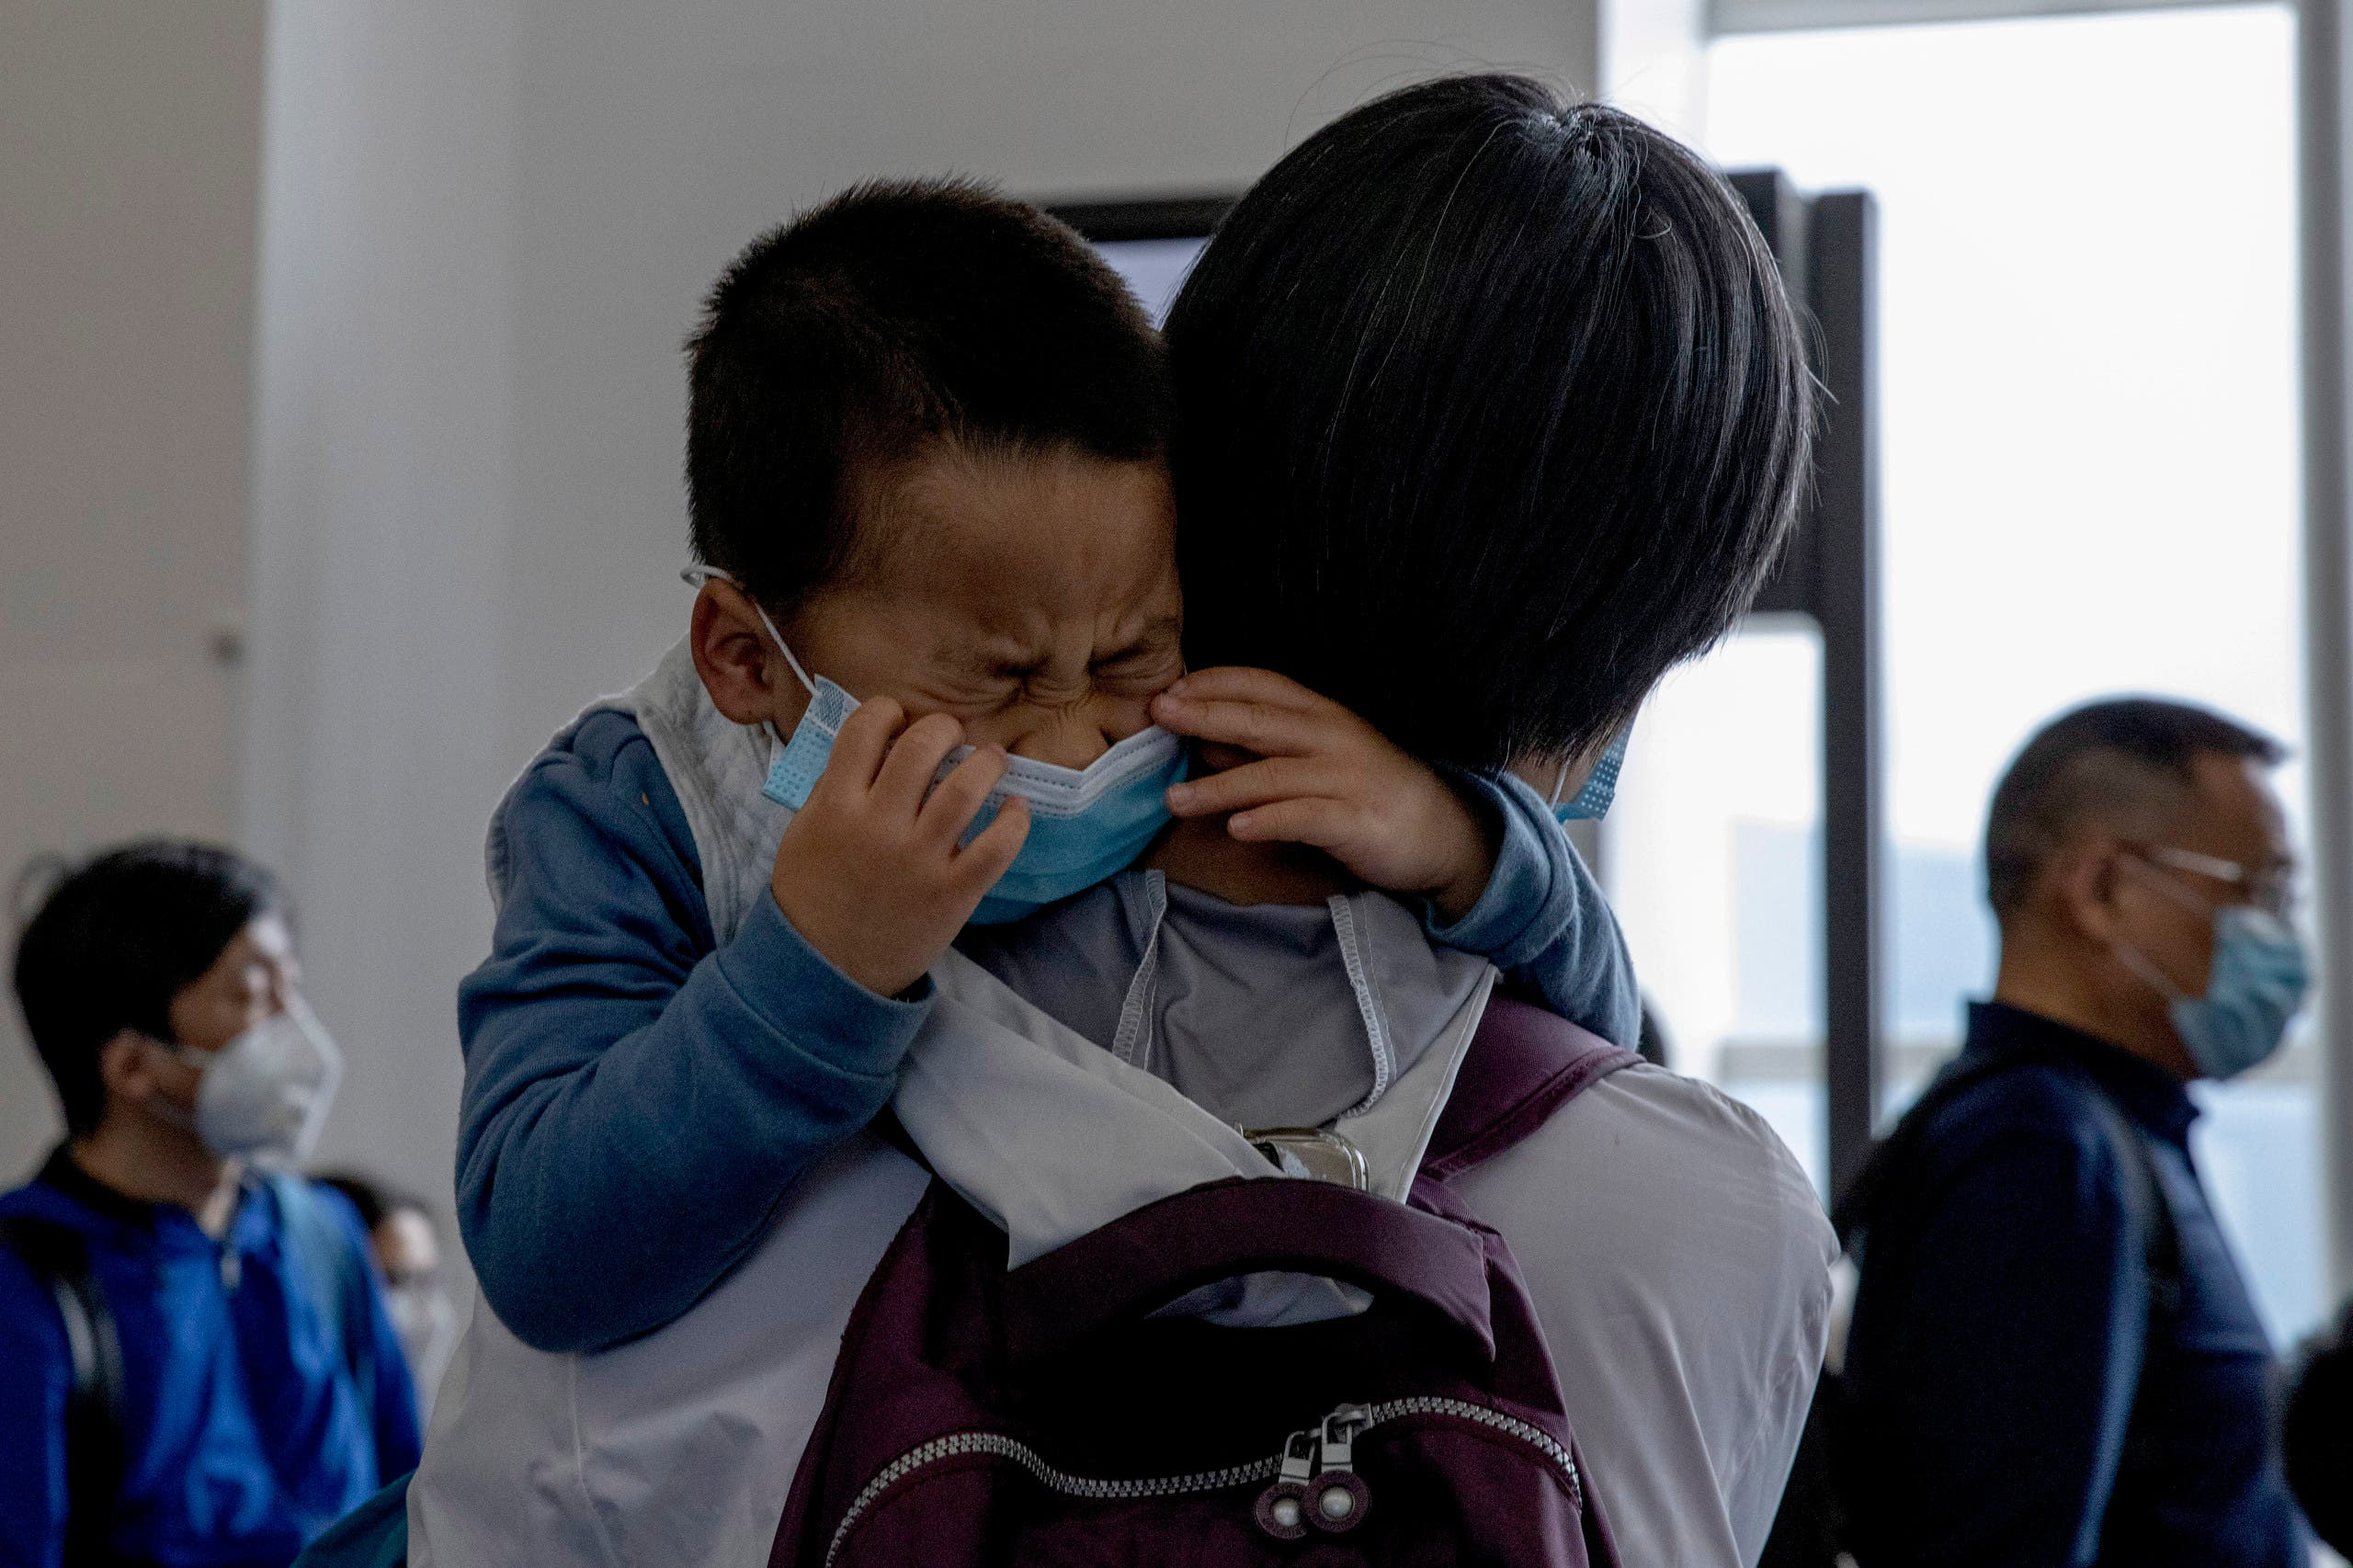 A child cries as he waits in line to board a plane for Beijing at the airport in Hong Kong on Feb. 9, 2020. (AP)